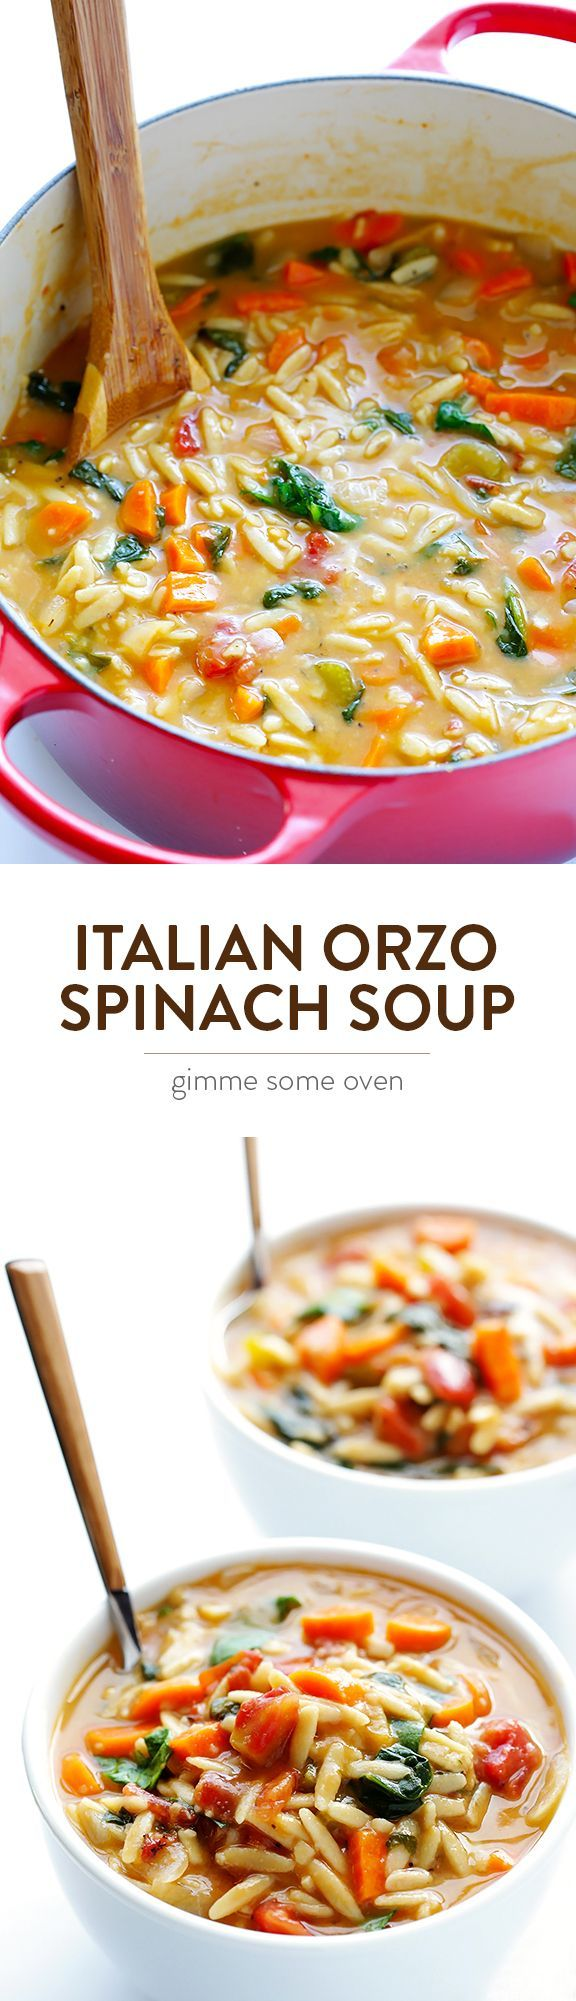 This Italian Orzo Spinach Soup is easy to make in 30 minutes, and it is wonderfully delicious and comforting.   gimmesomeoven.com